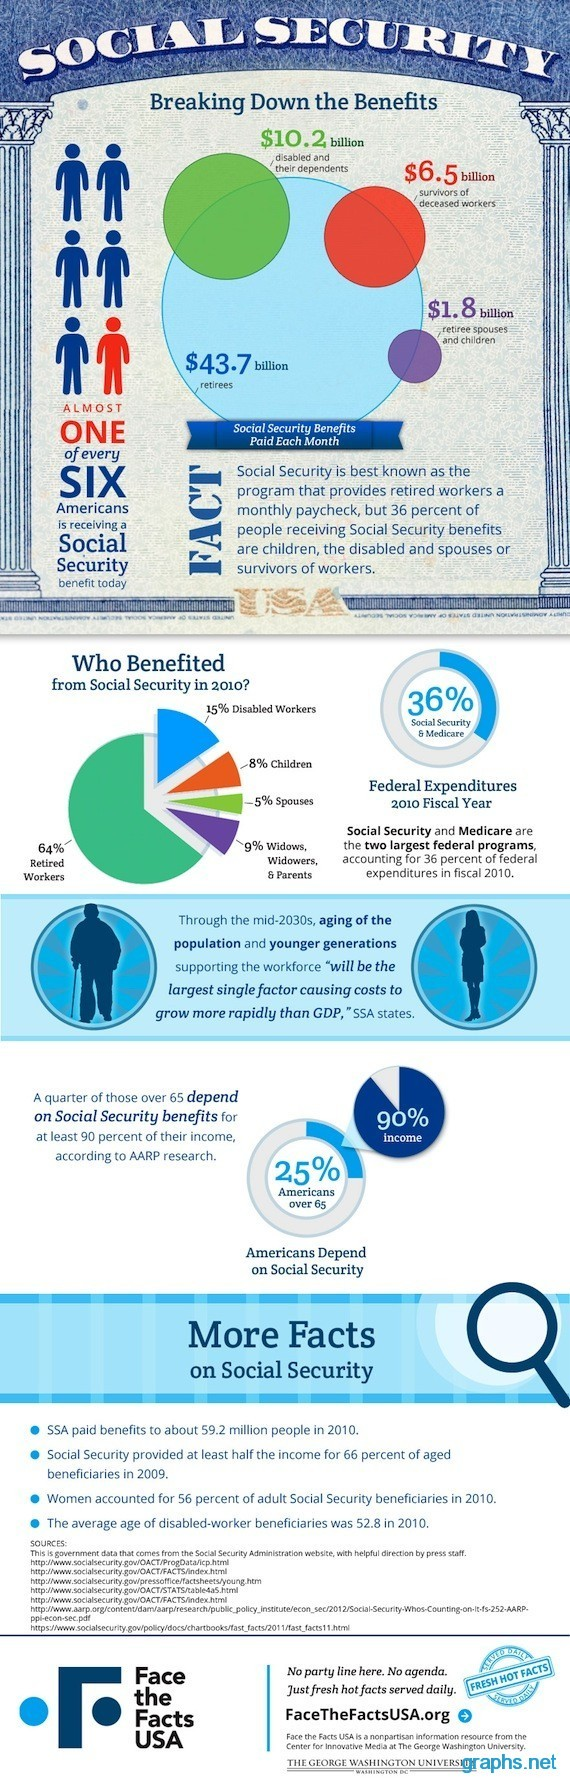 Demographics of Social Security Recipients